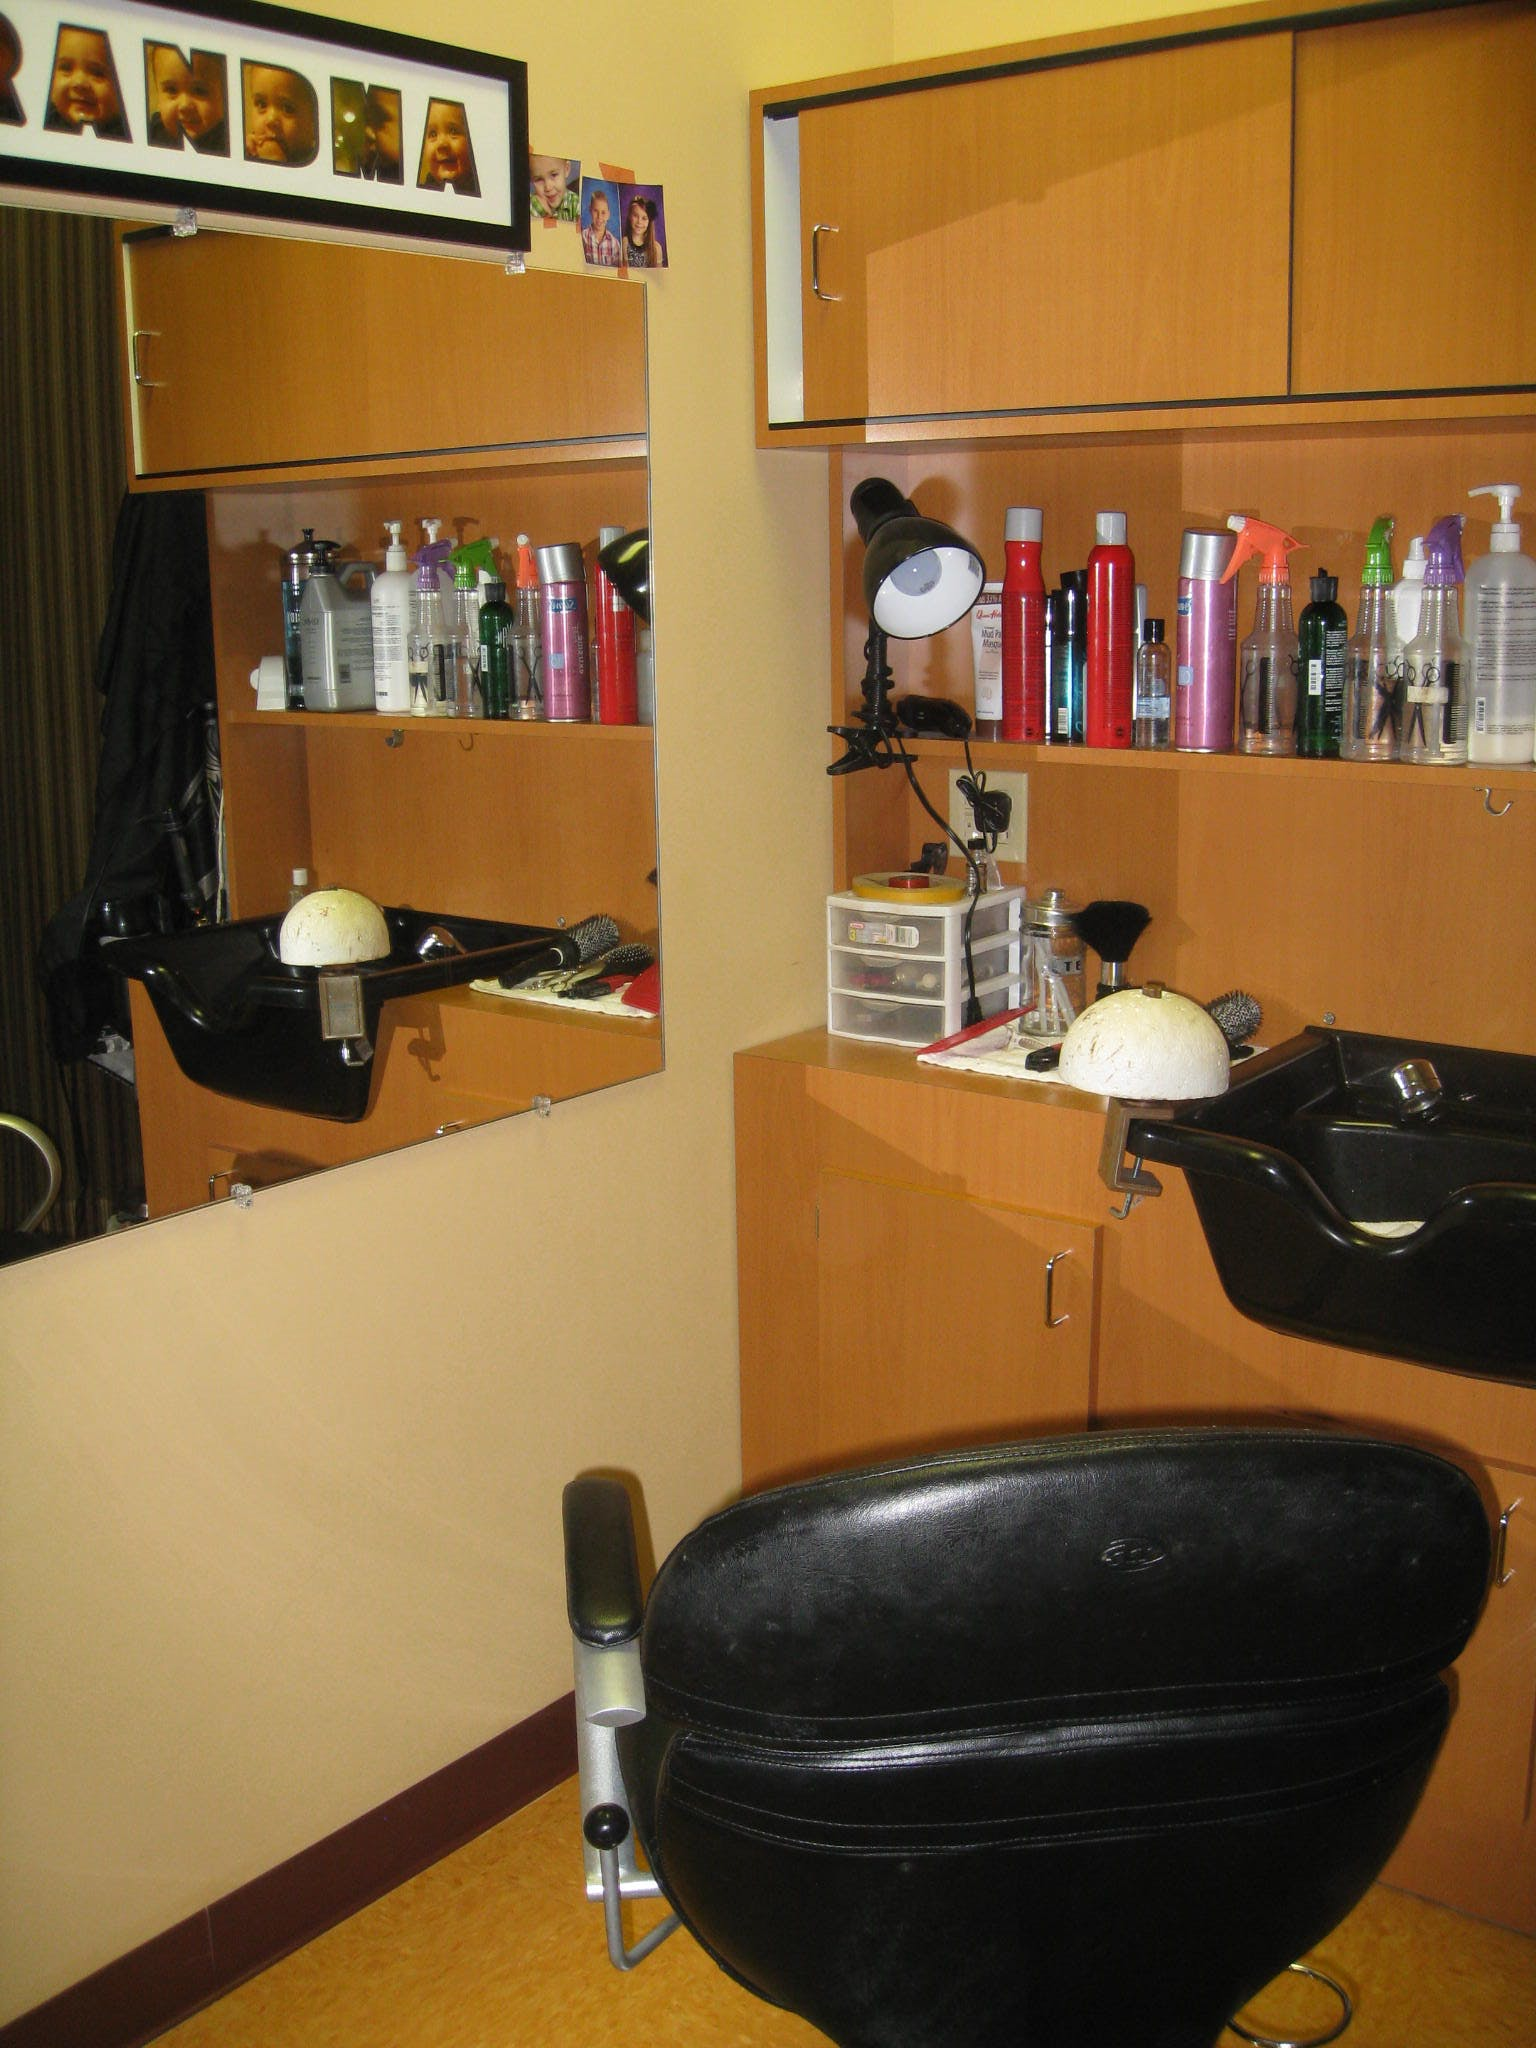 Style 24 specializes in non-surgical hair replacement and provides a separate salon room for your privacy.